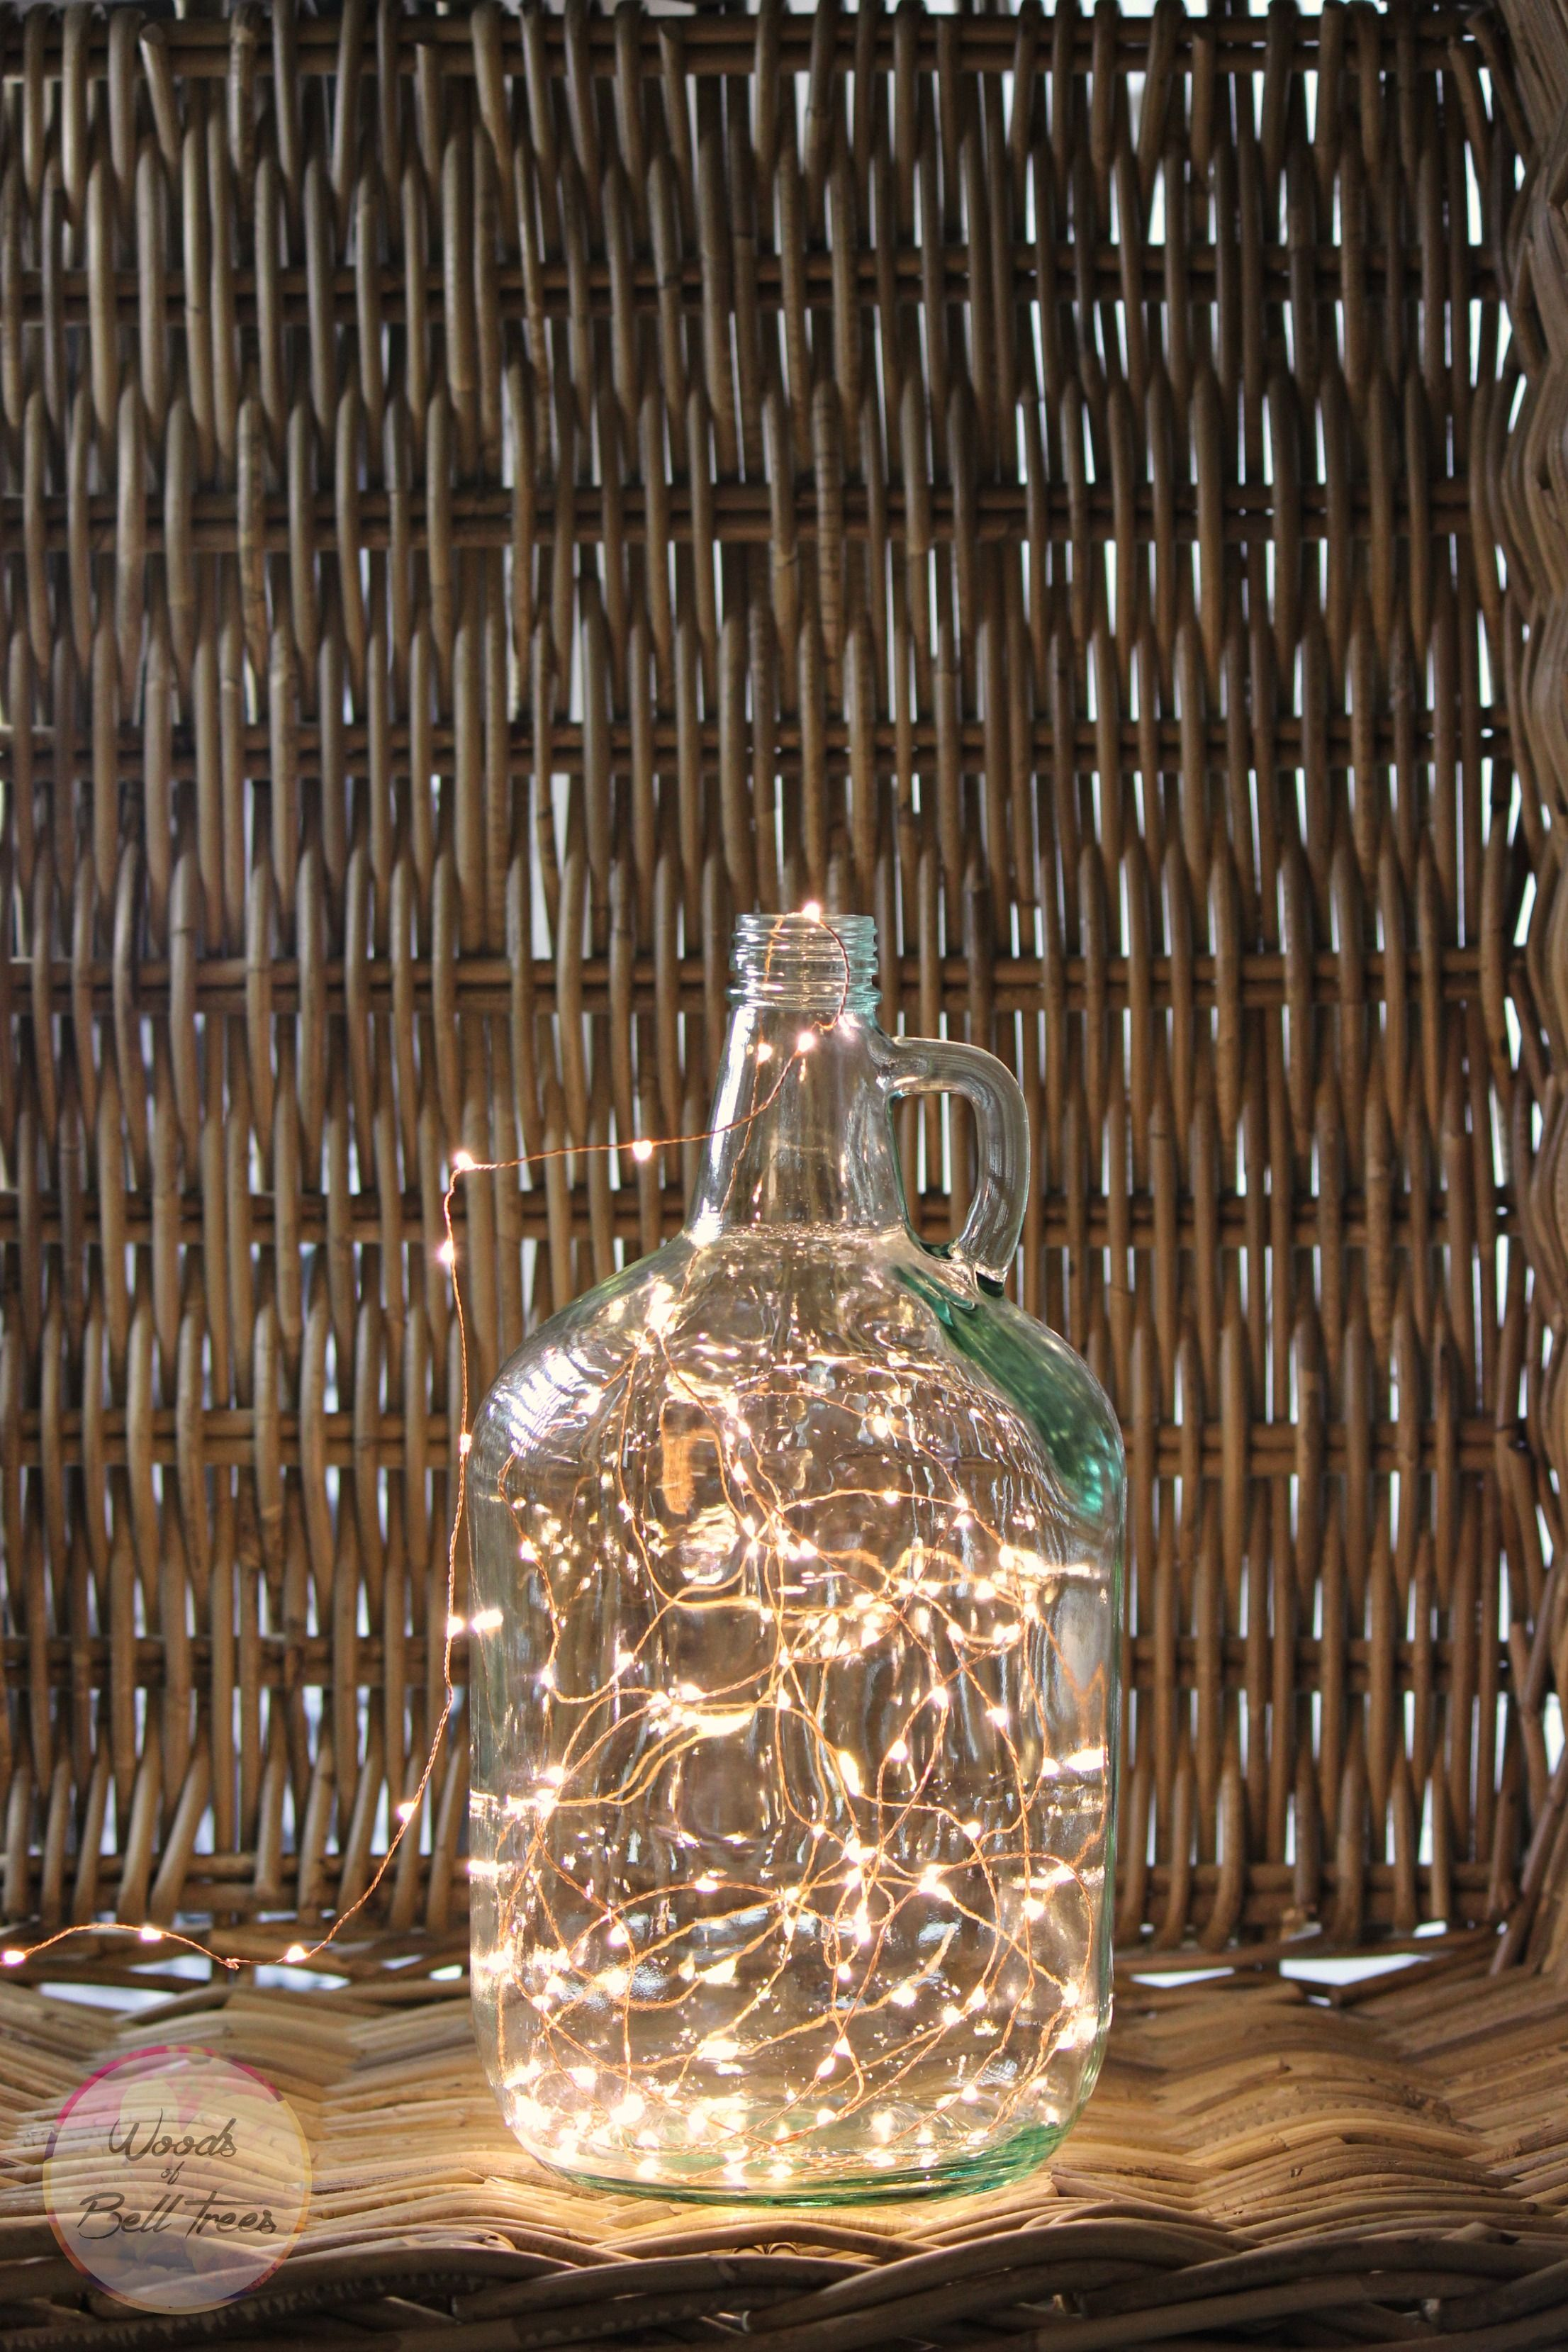 Make your very own growler lamp with